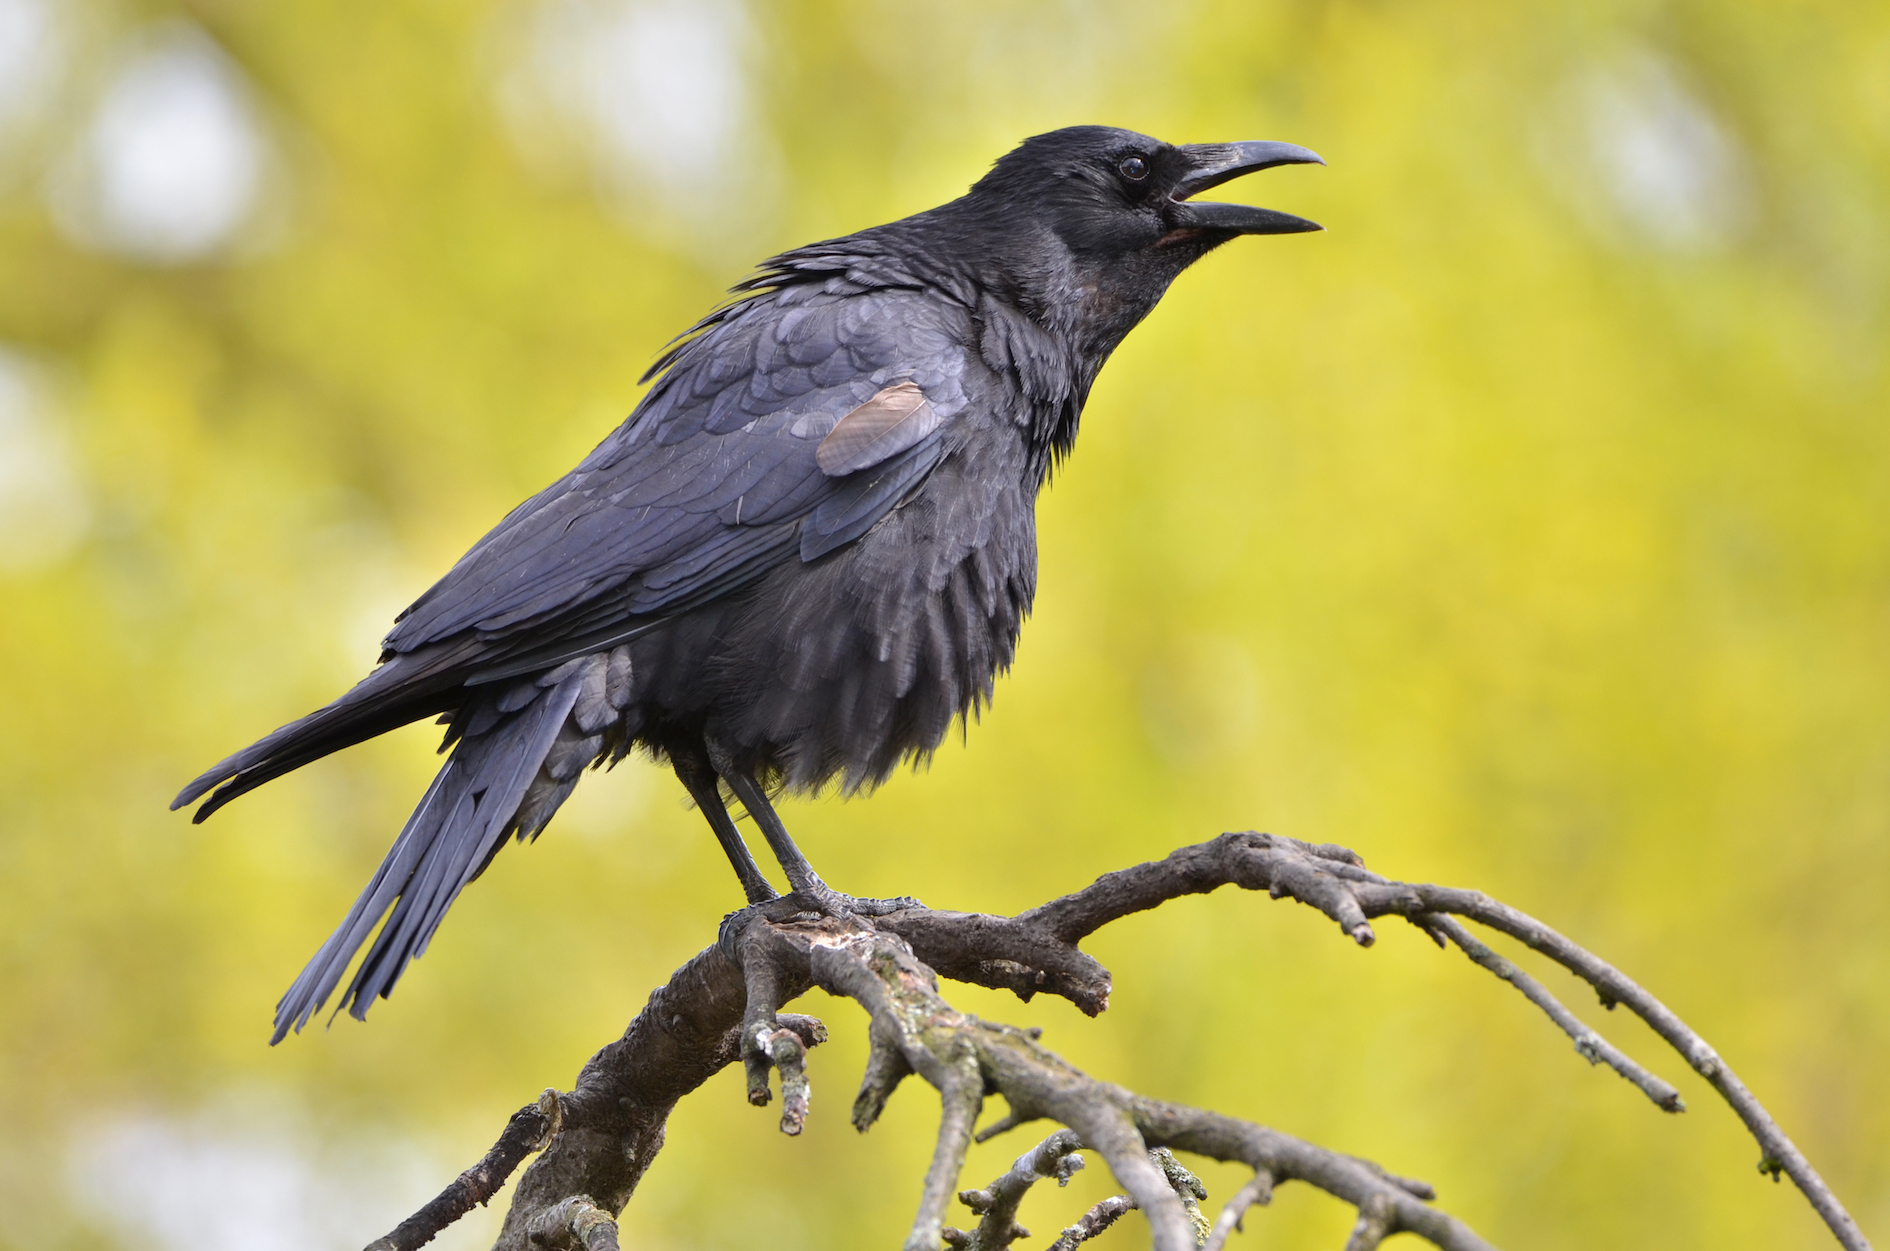 Biologists set out to examine how crows fashion their most sophisticated tool, a stick with a hook at the tip.